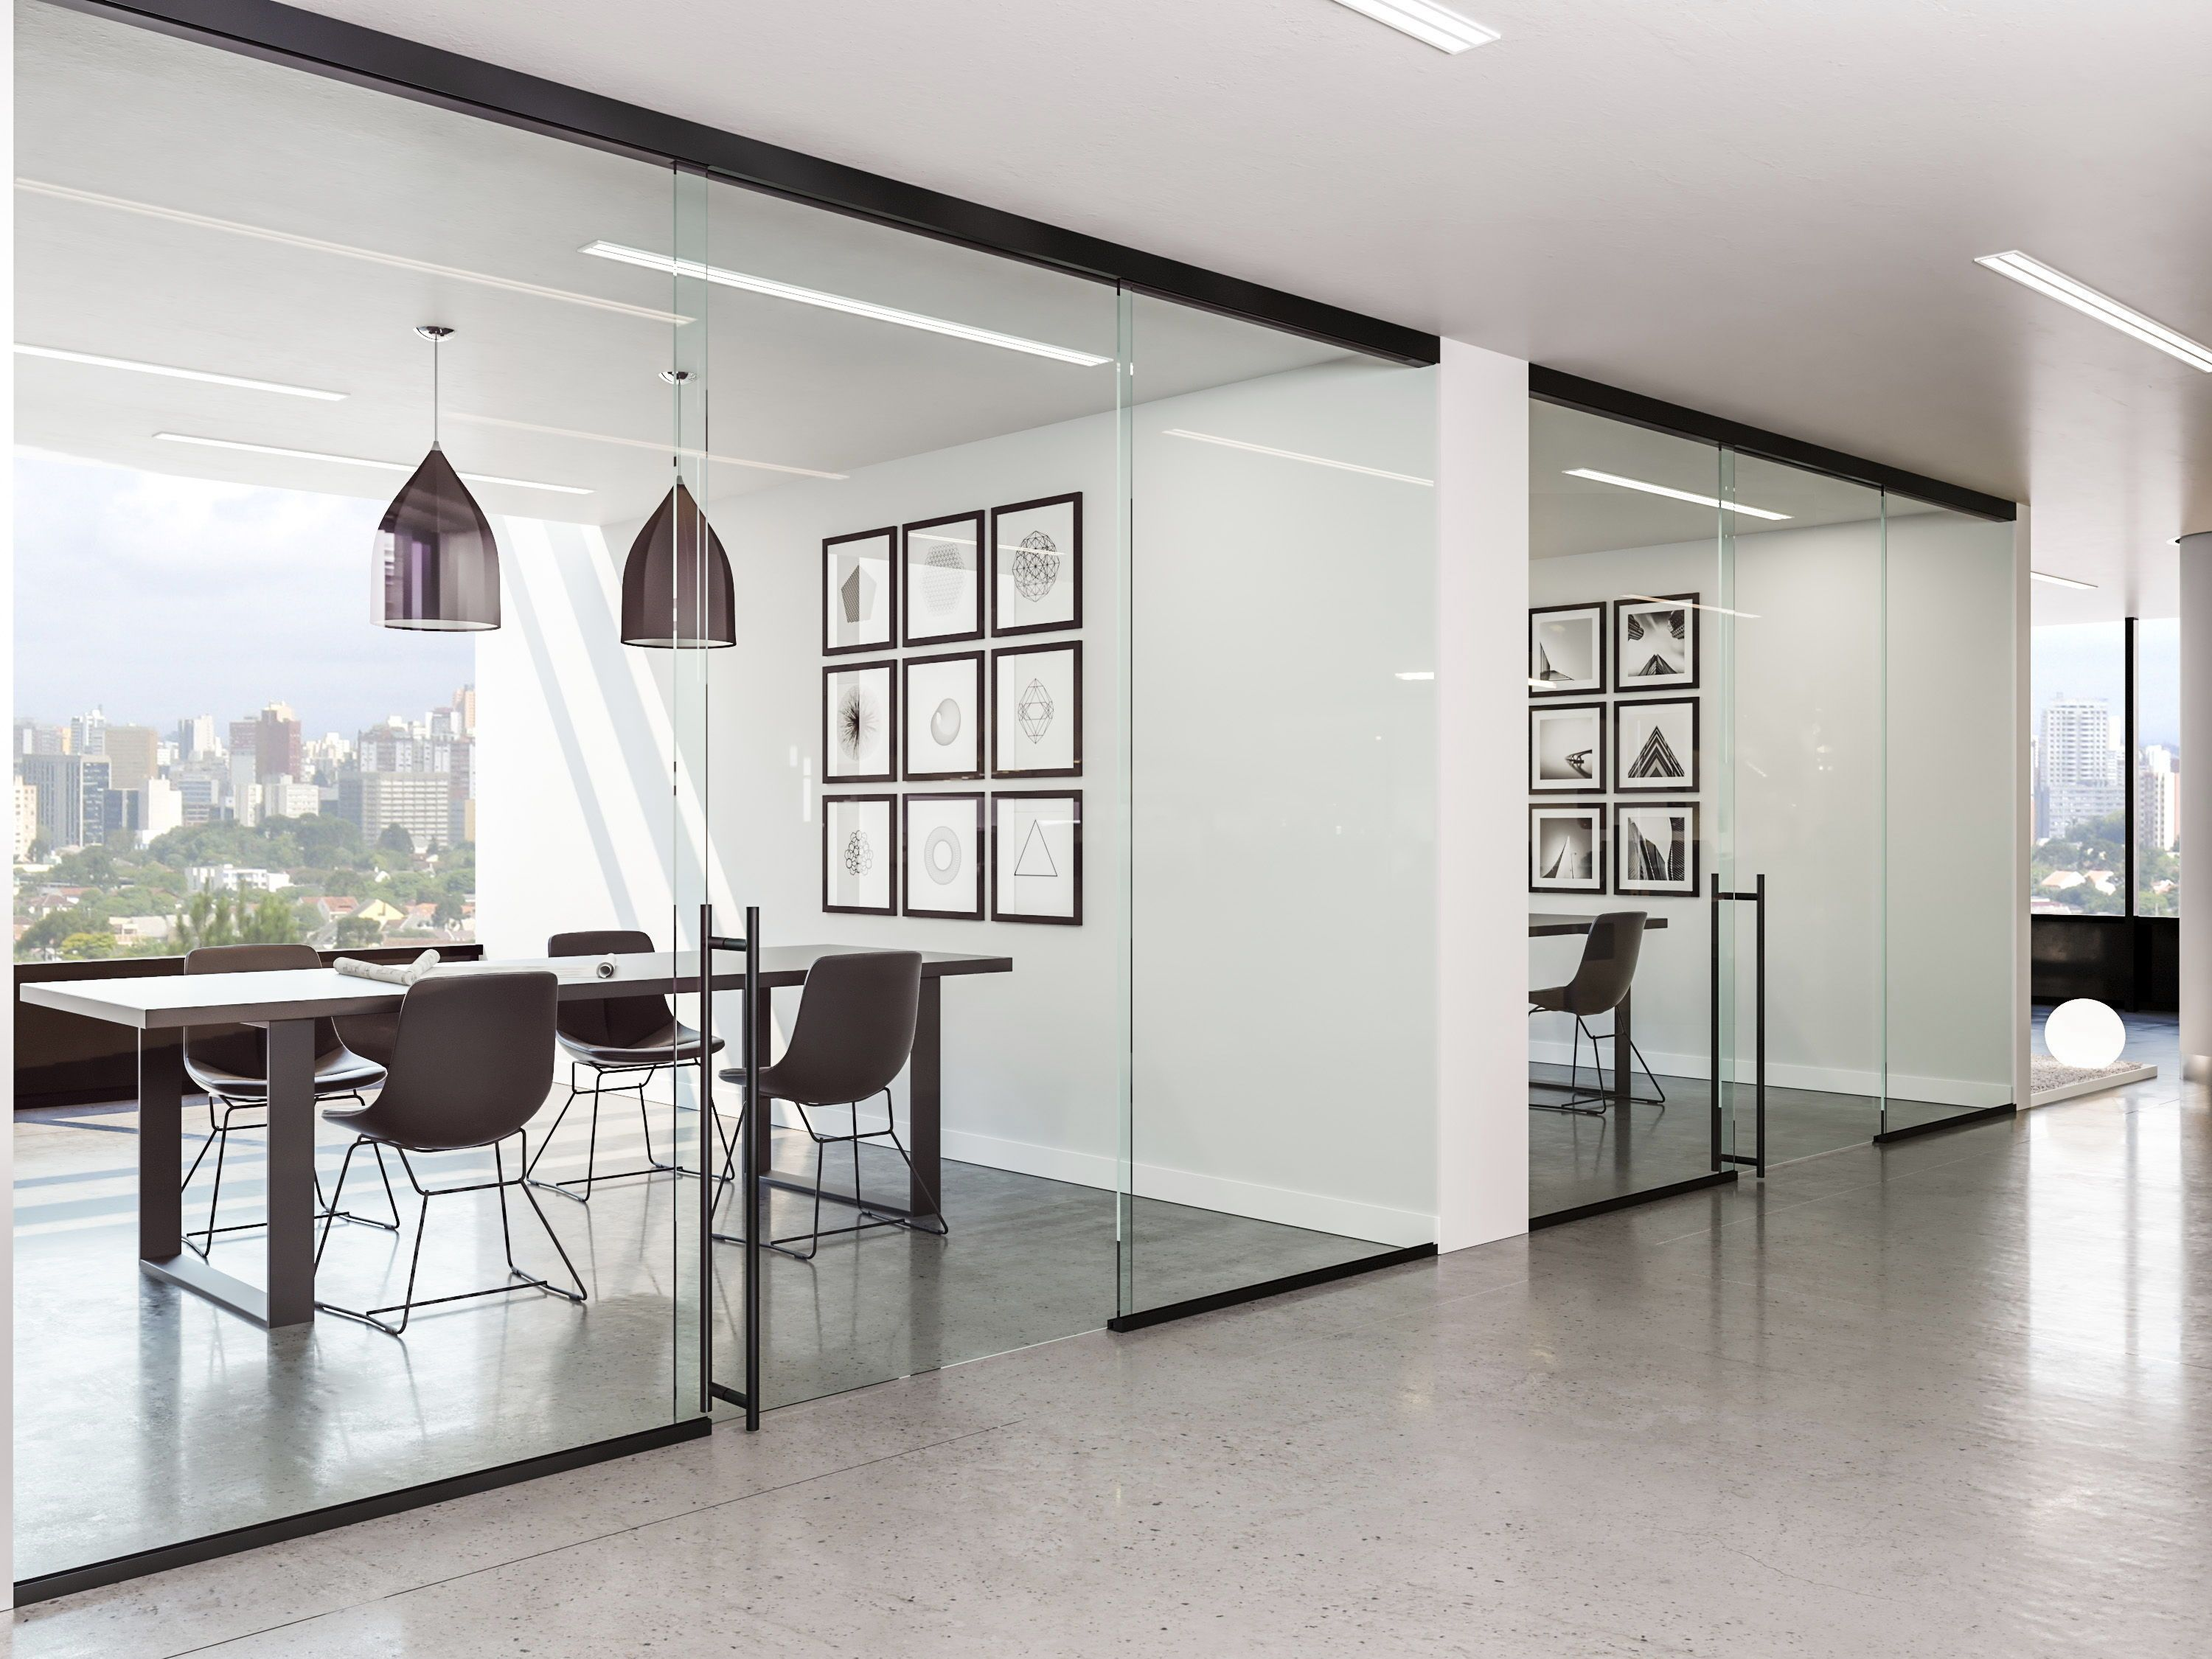 Pin On Workplace Design Inspiration For Commercial Spaces